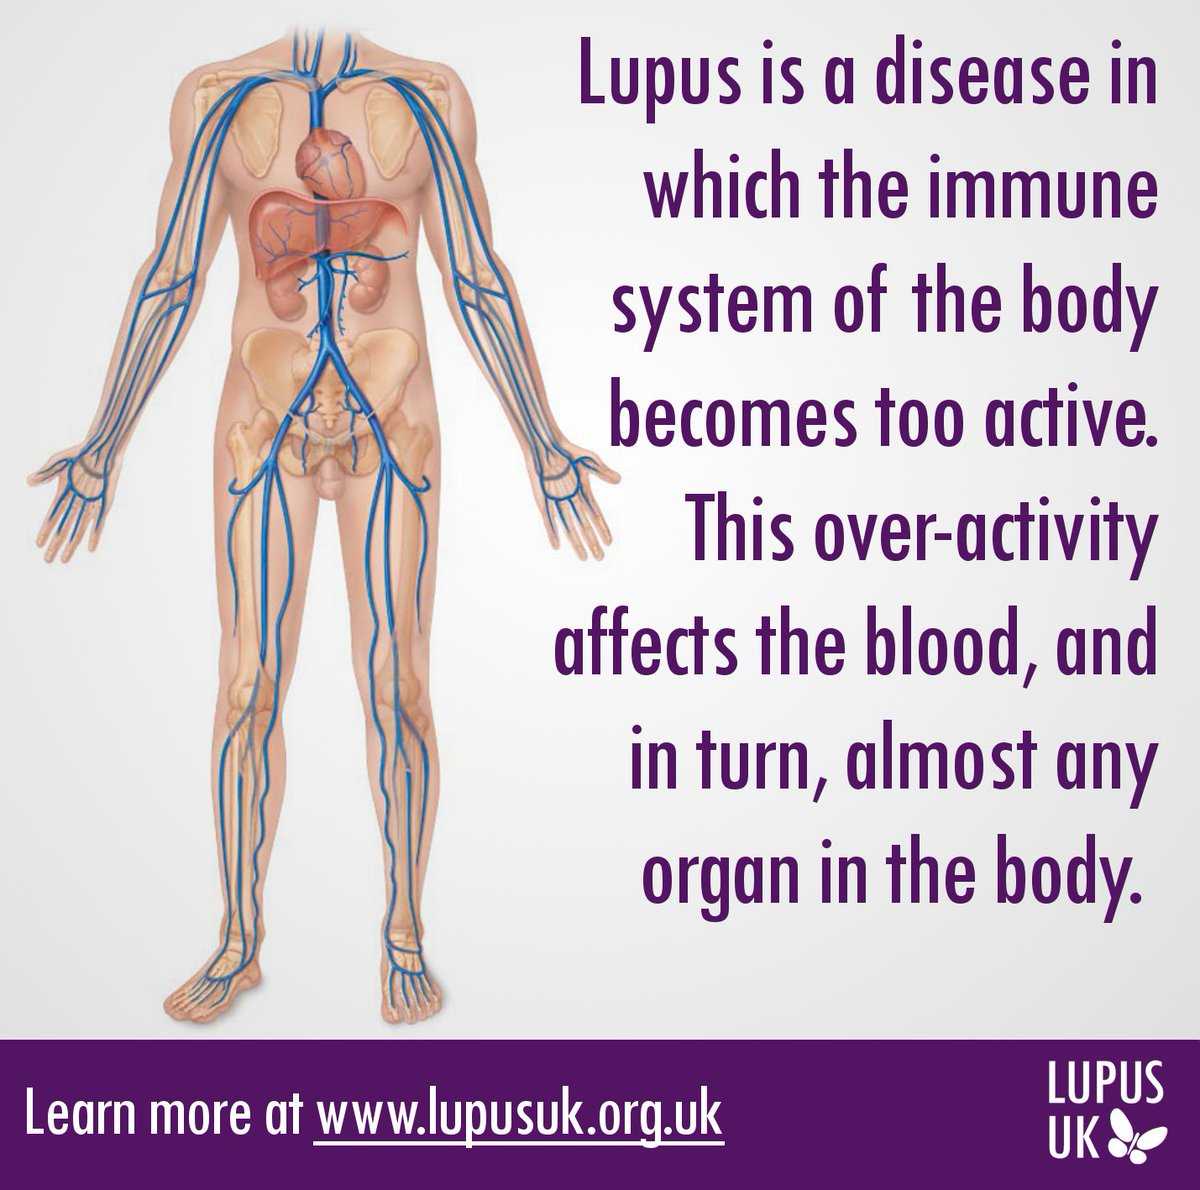 Today is #WorldLupusDay!  #WorldLupusDay Fact 1: Learn more at https://t.co/XhLZbU4c8p https://t.co/URmTm7LG4r